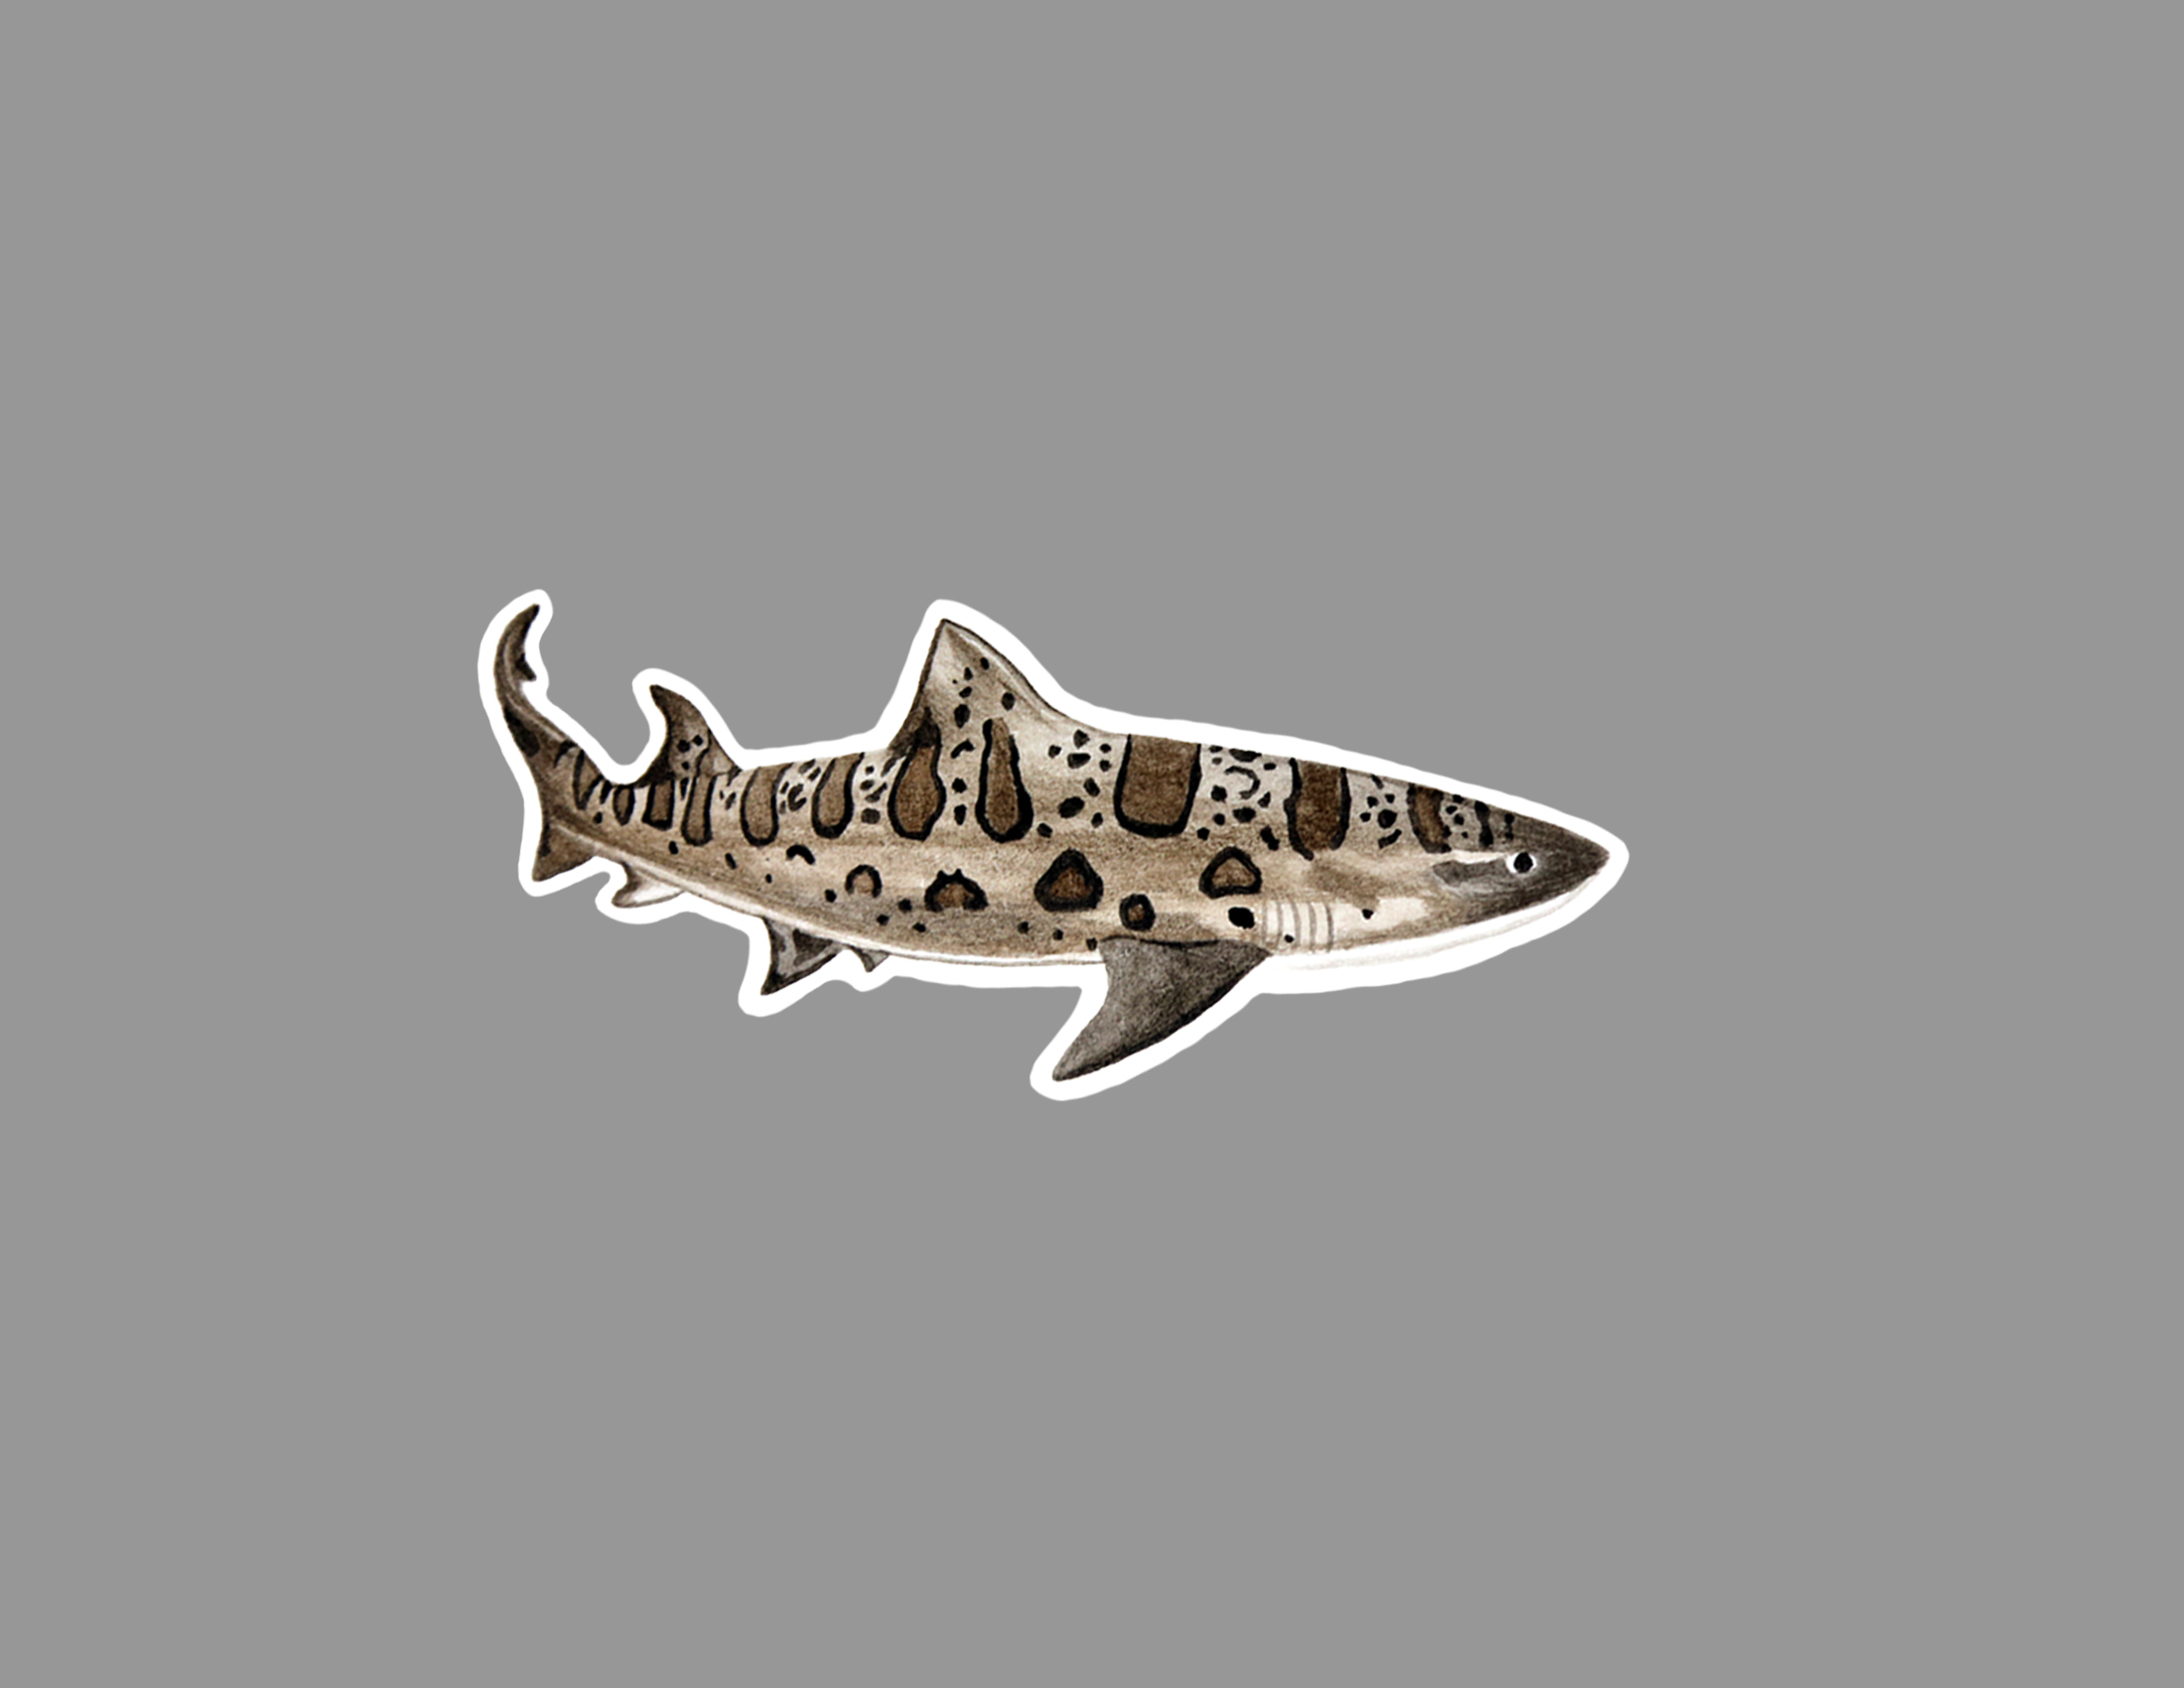 leopard shark sticker.jpg